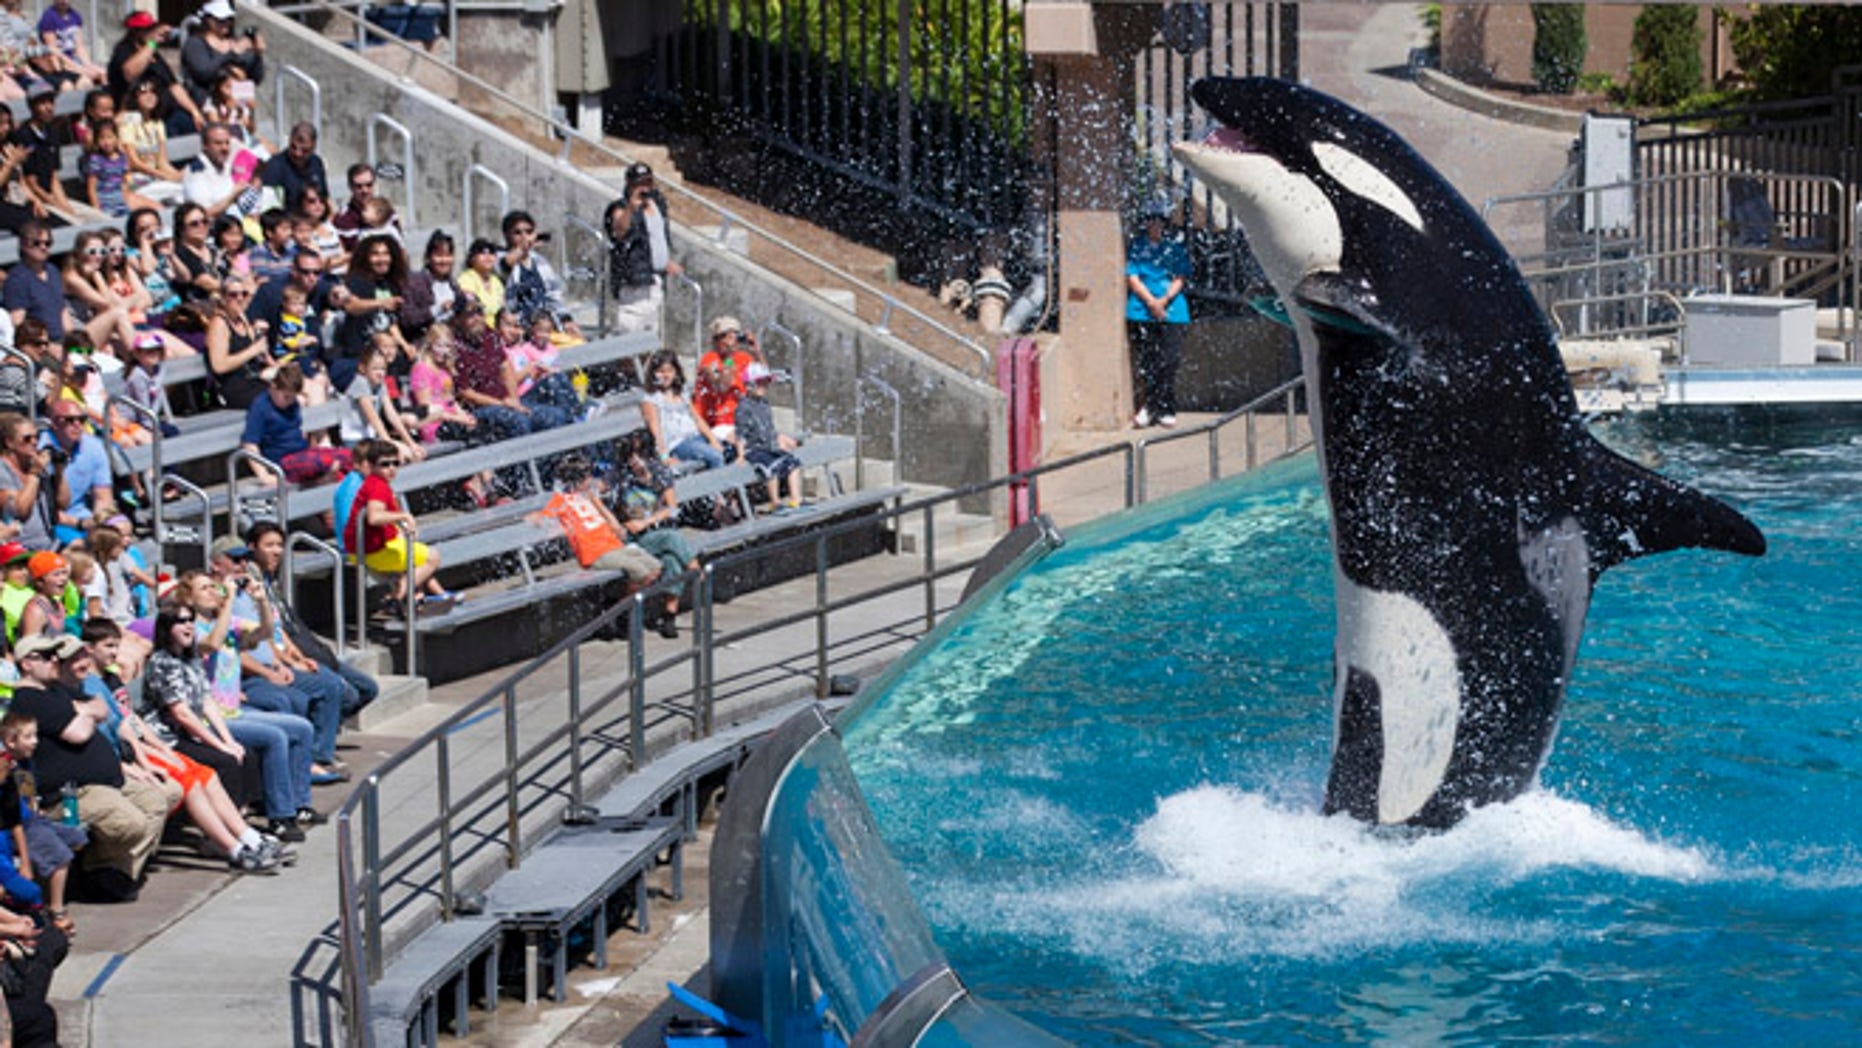 FILE 2014: Visitors are greeted by an Orca killer whale as they attend a show featuring the whales during a visit to the animal theme park in San Diego.